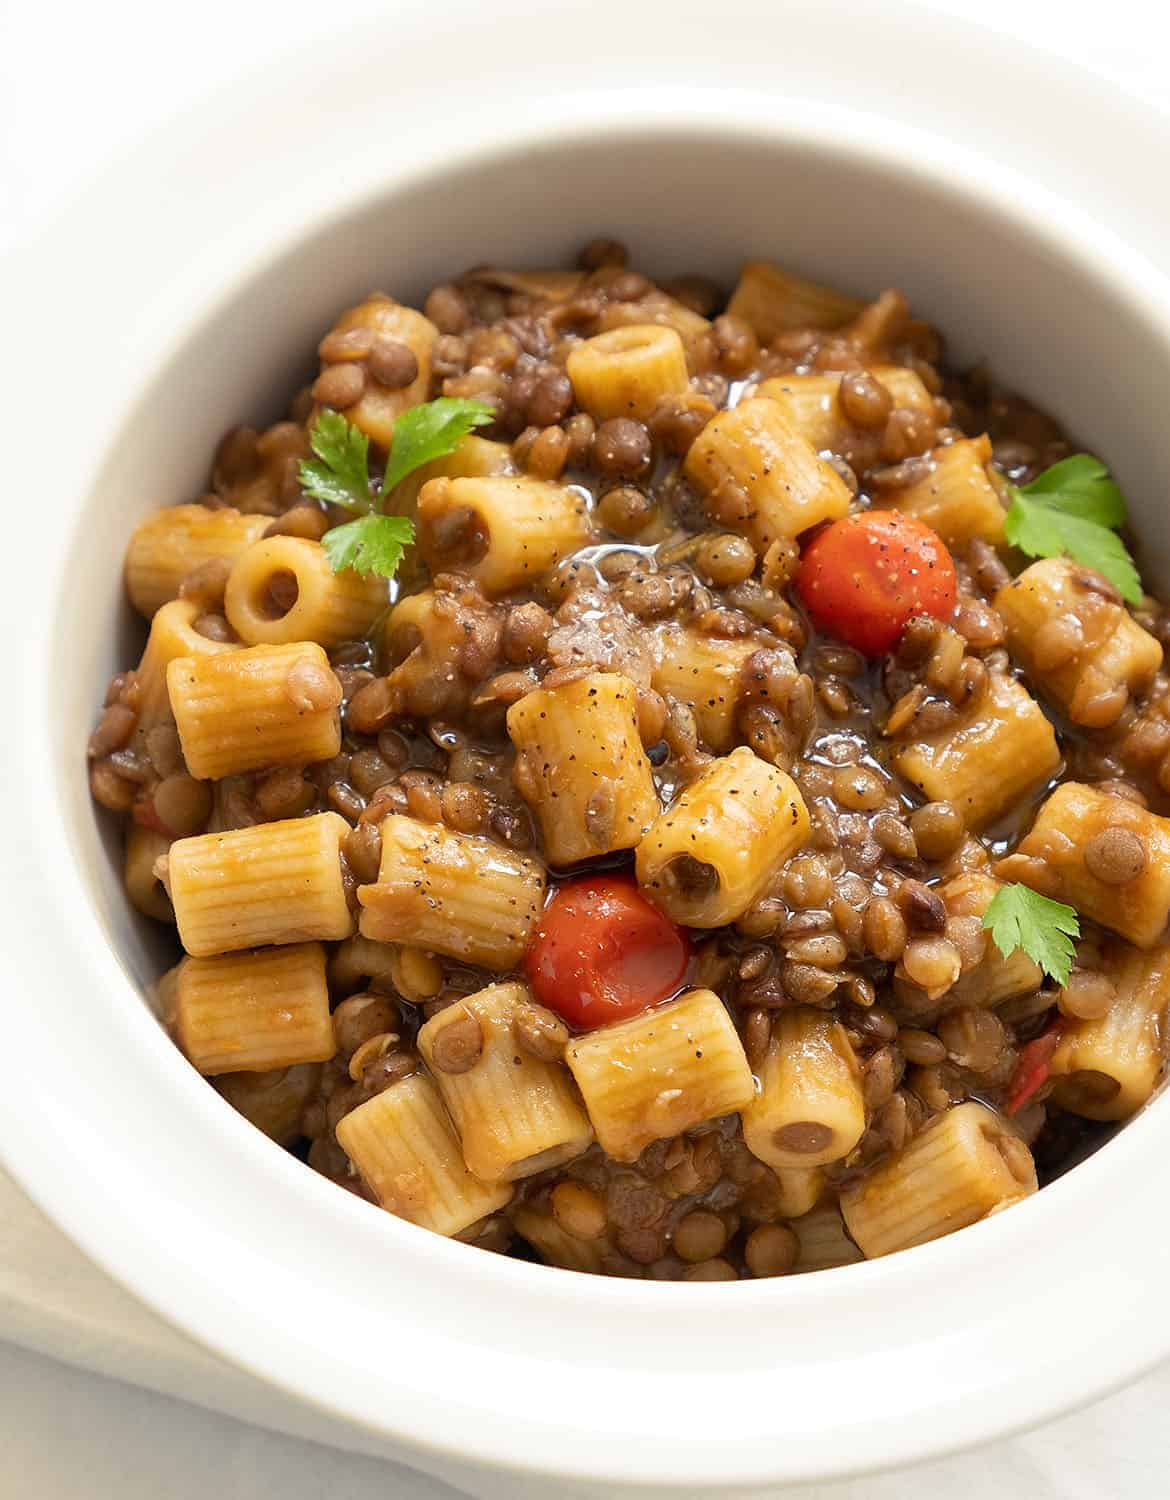 A white bowl full of pasta with lentils.